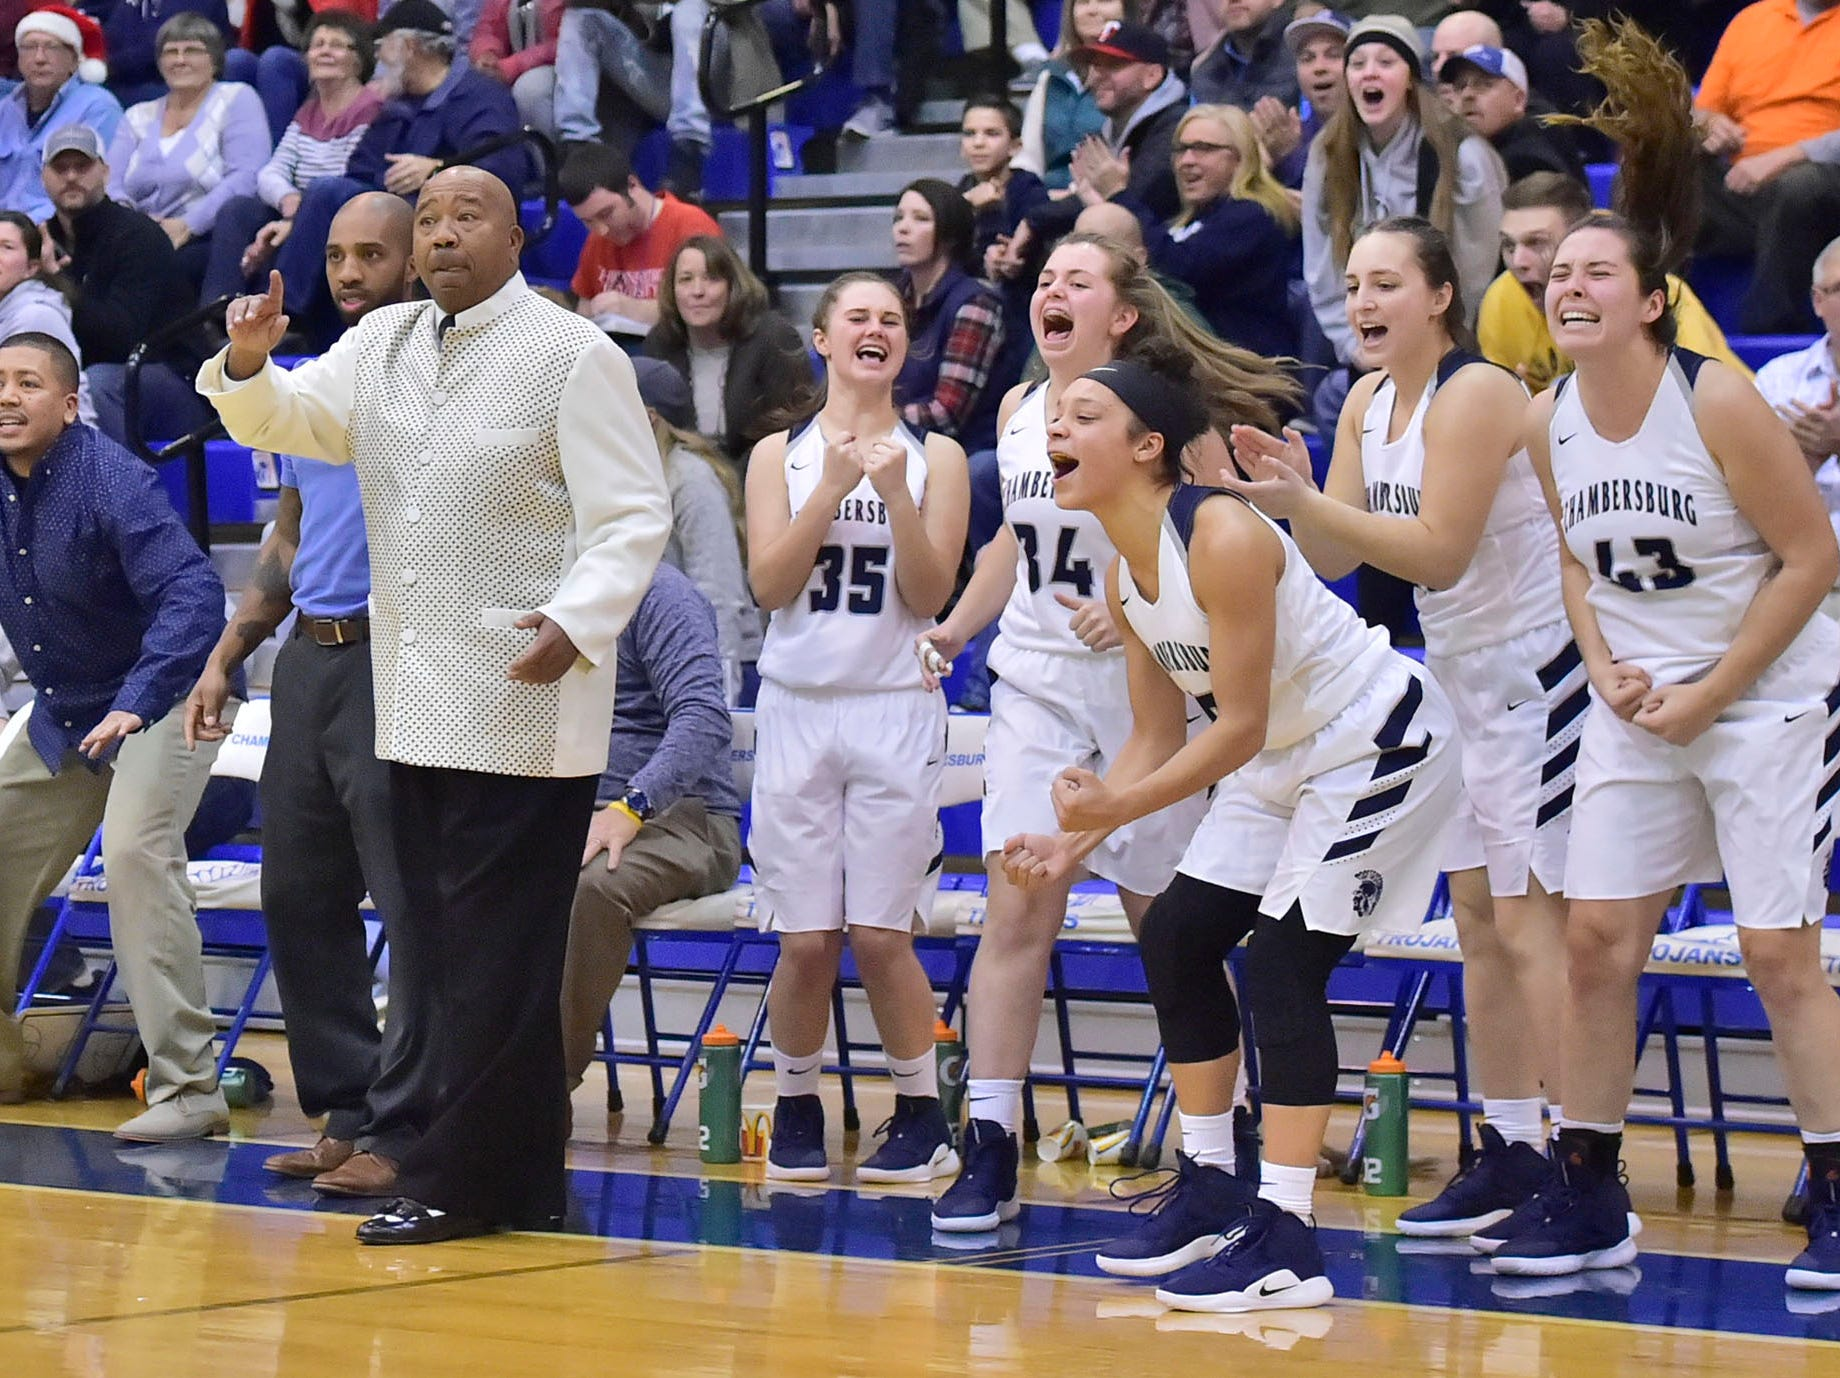 The Trojans bench erupts as they take the lead during OT. Chambersburg played James Buchanan girls during the Franklin County Tip-Off Tournament, Friday, Dec. 7, 2018.